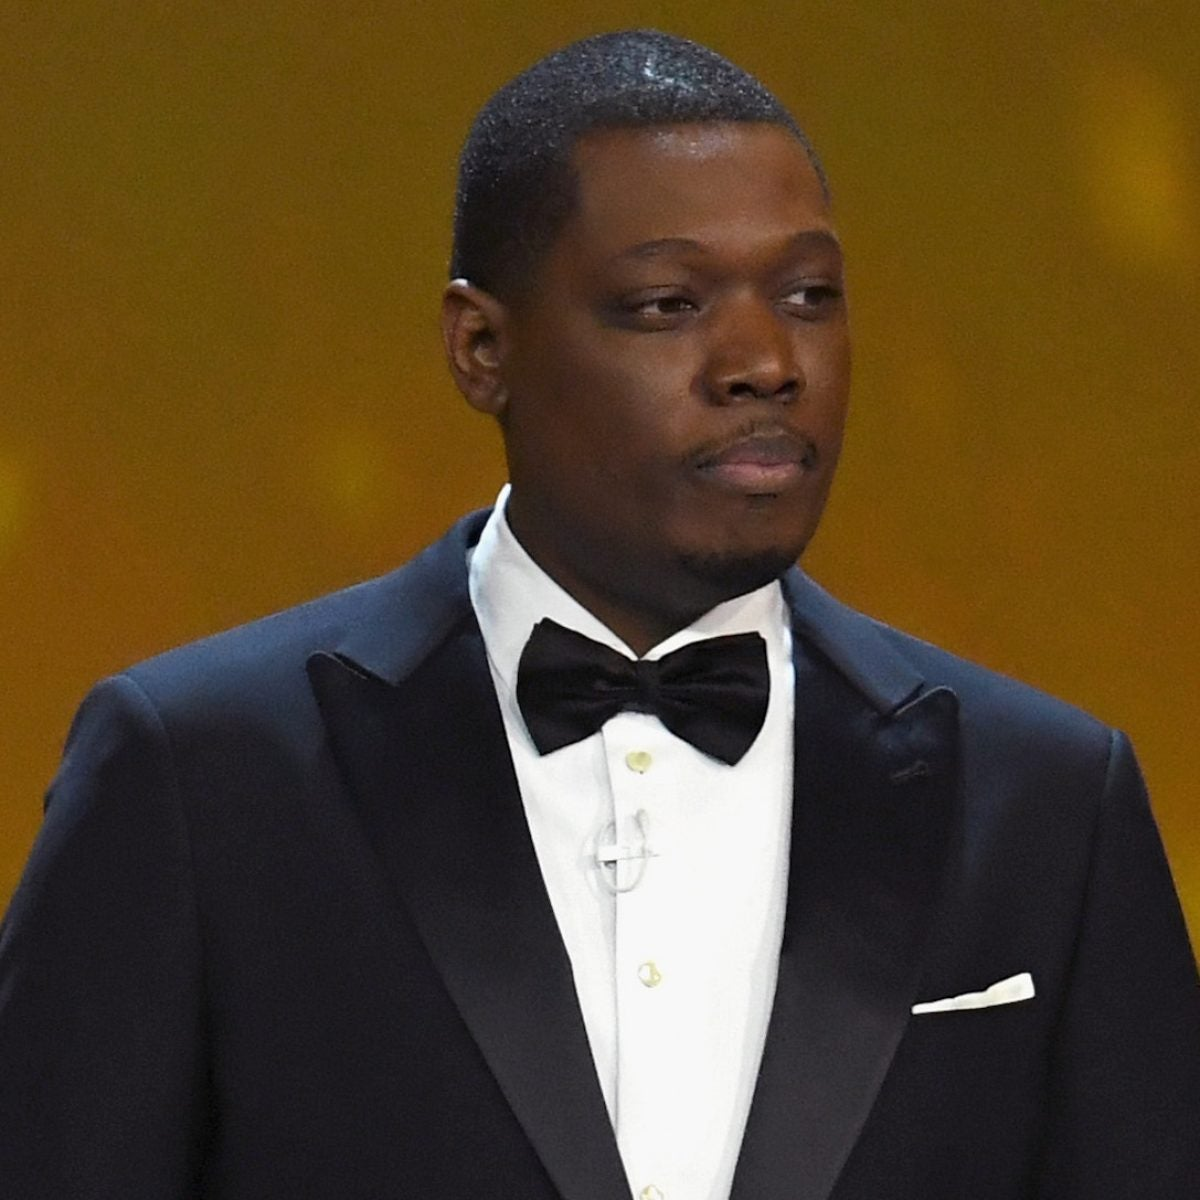 'Saturday Night Live' Star Michael Che Loses Grandmother To COVID-19: 'I'm Just Mad'